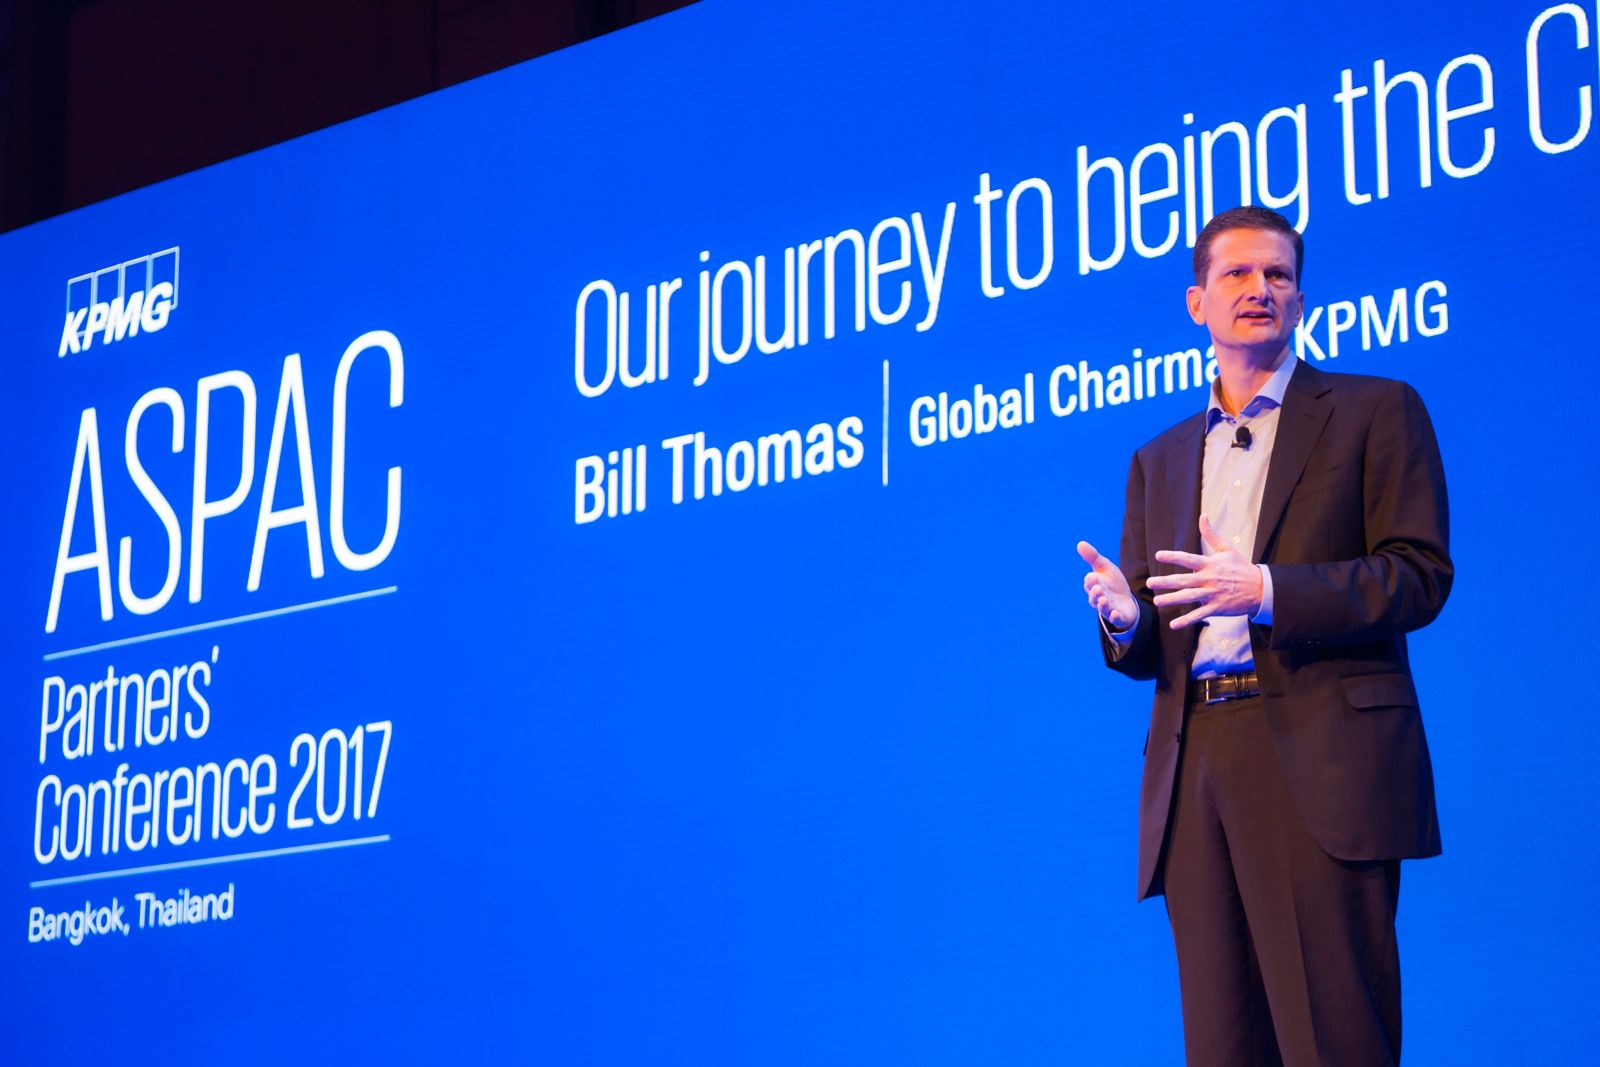 Bill Thomas, Global Chairman, KPMG International